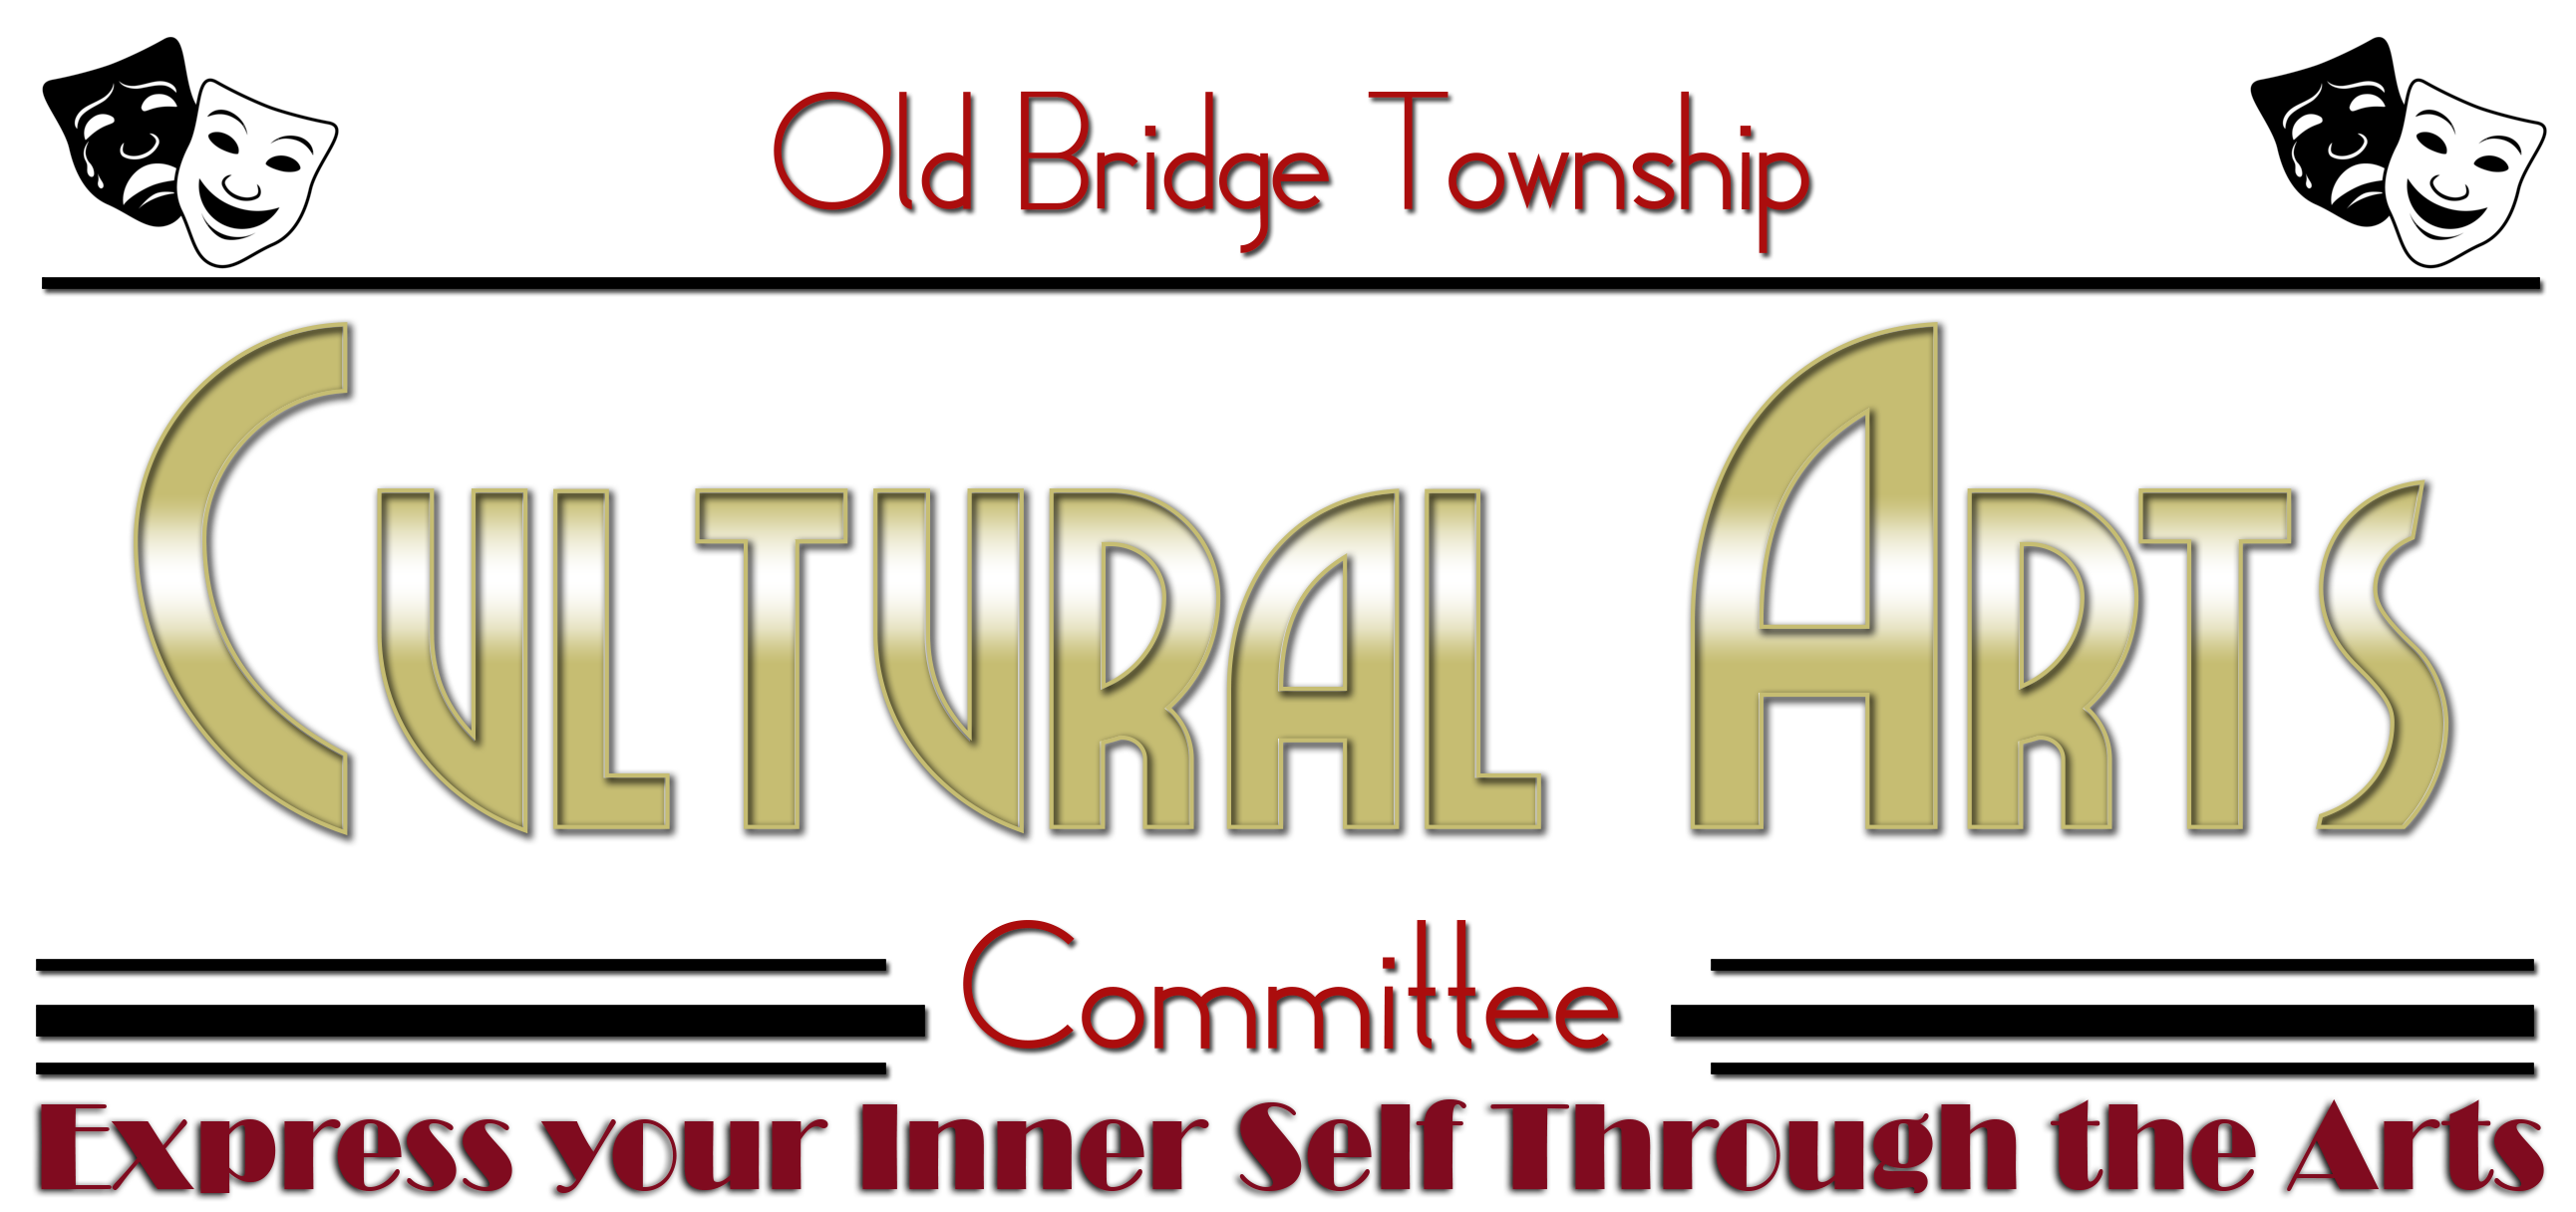 Cultural Arts Committee Logo